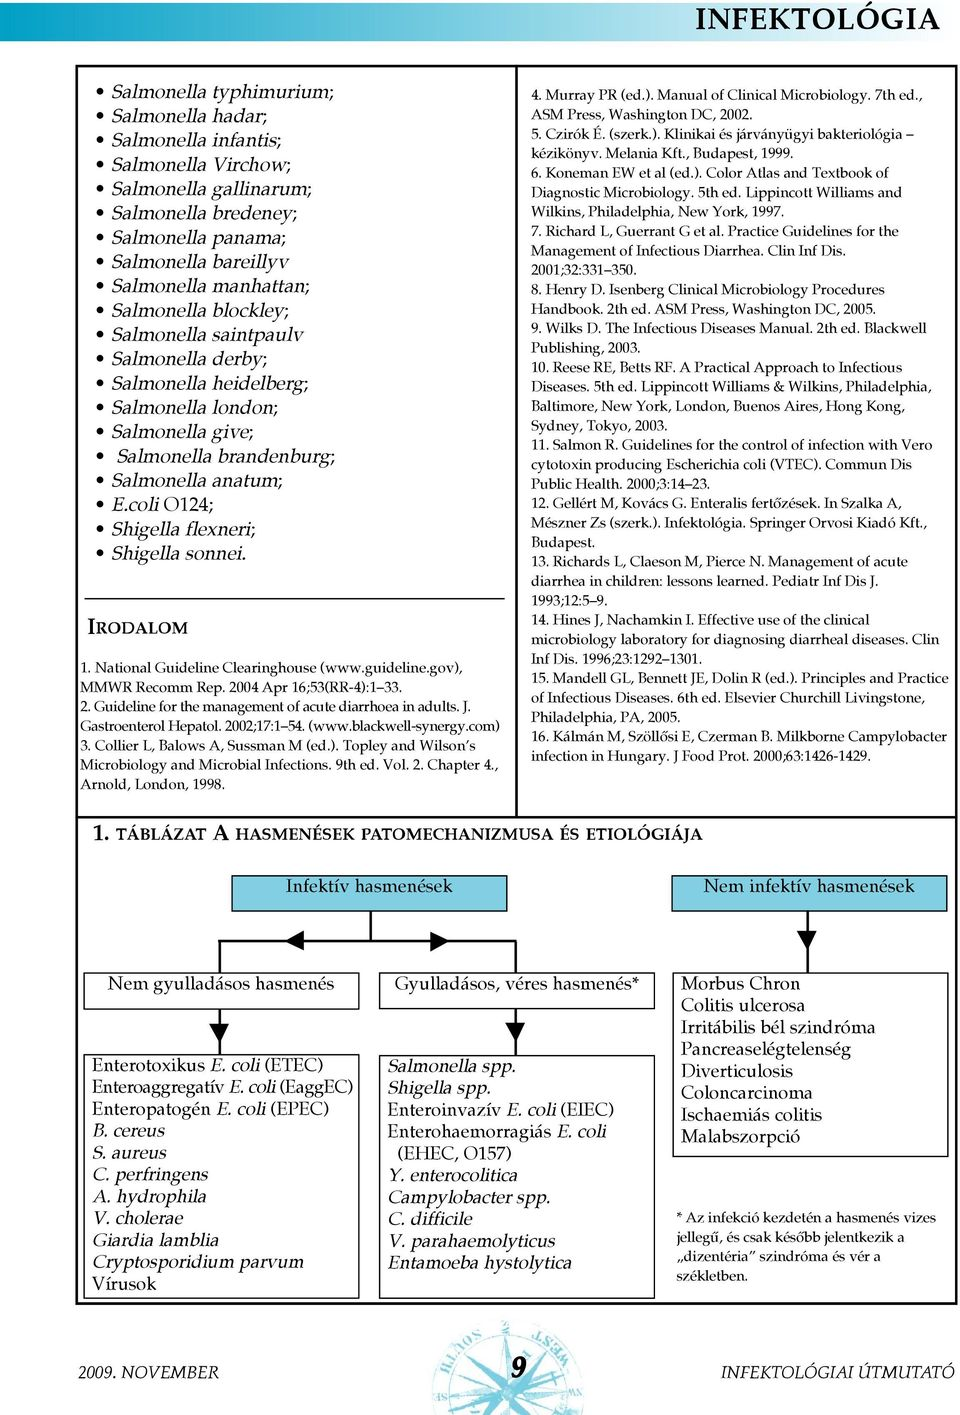 IRODALOM 1. National Guideline Clearinghouse (www.guideline.gov), MMWR Recomm Rep. 2004 Apr 16;53(RR-4):1 33. 2. Guideline for the management of acute diarrhoea in adults. J. Gastroenterol Hepatol.